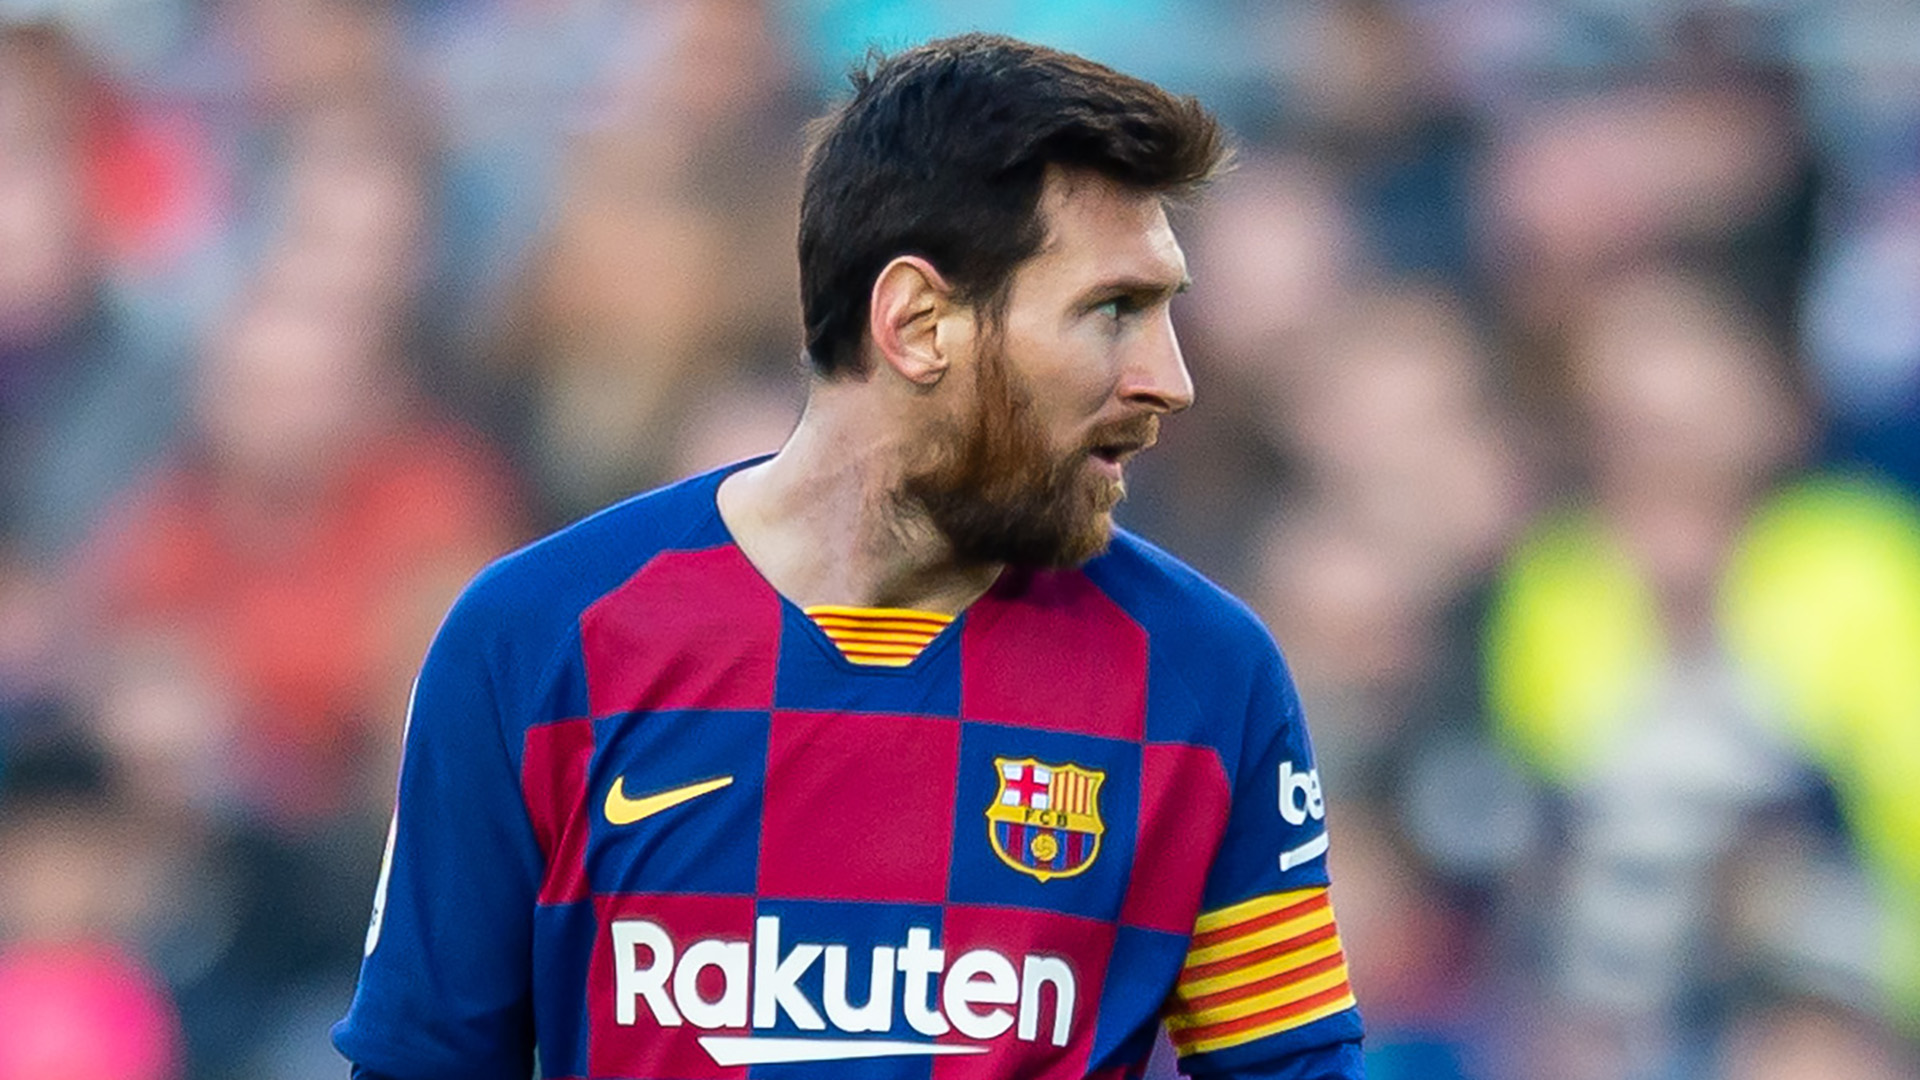 20th Season In Professional Football For The King Of Football A Tribute To Lionel Messi Goal Com